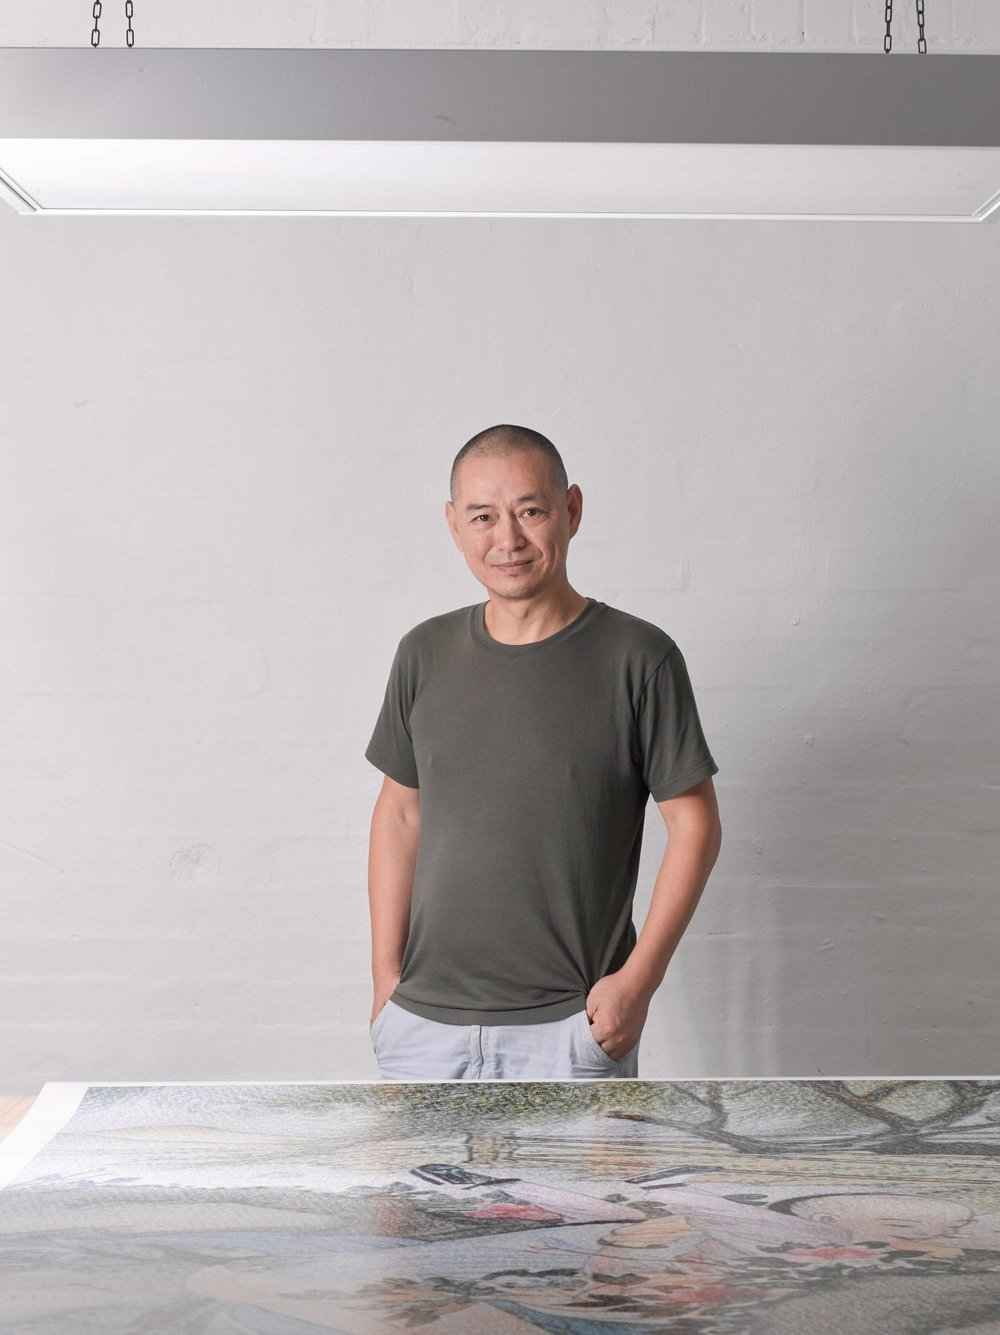 Guo Jian. Photo by Peter Diseris